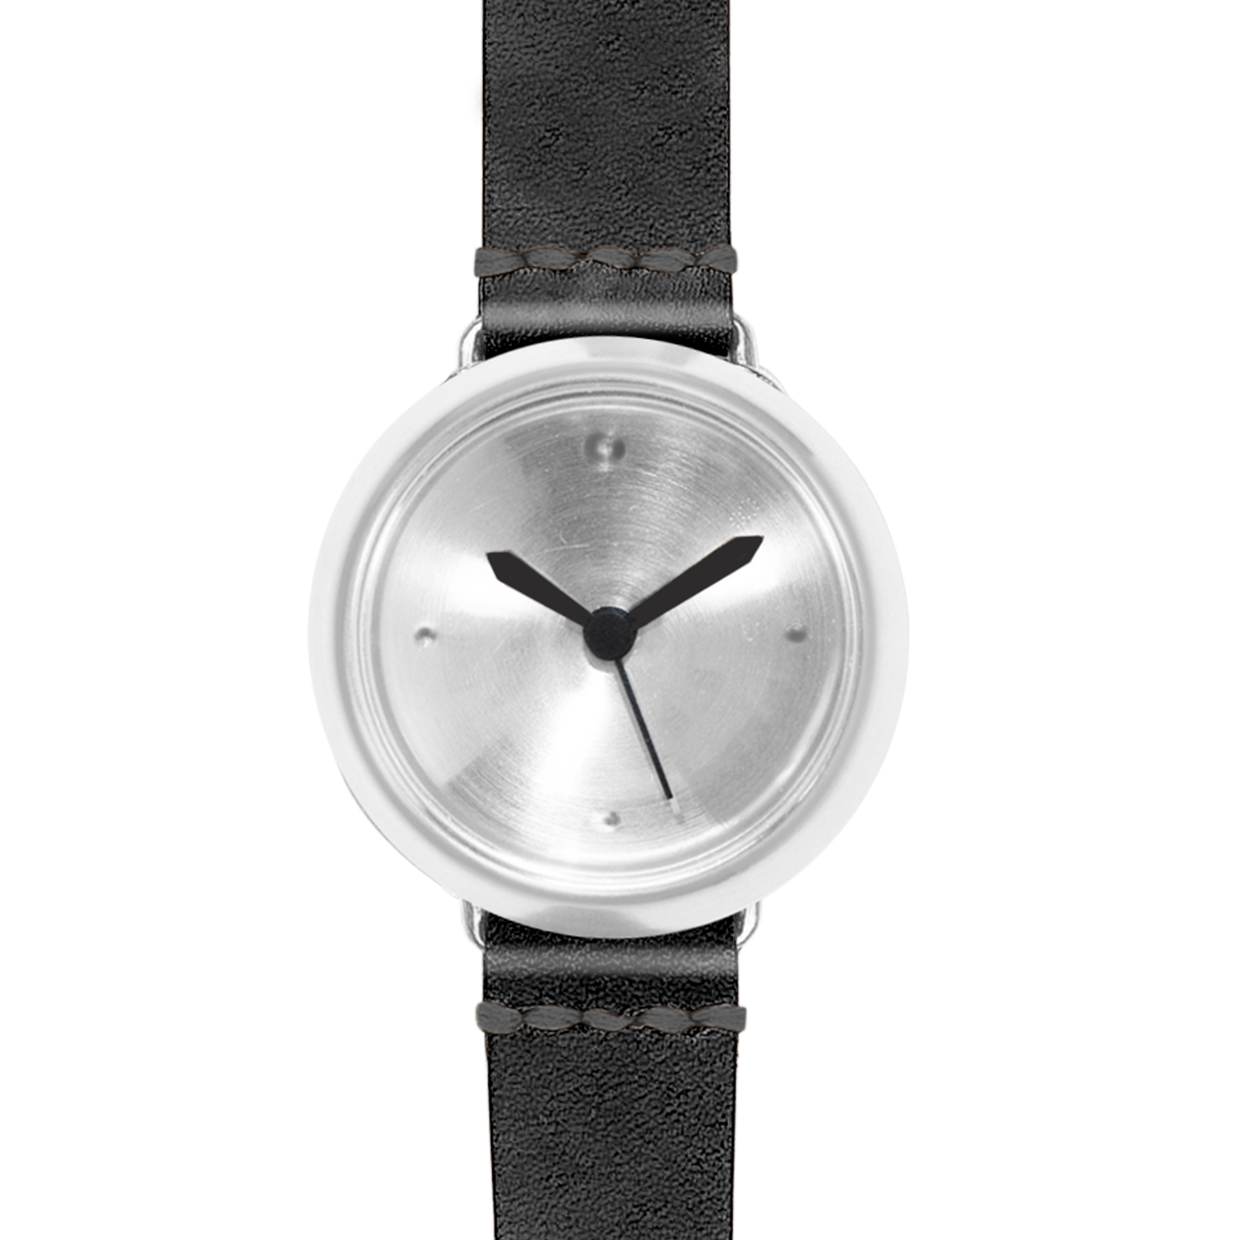 CAN_WATCH_S_black